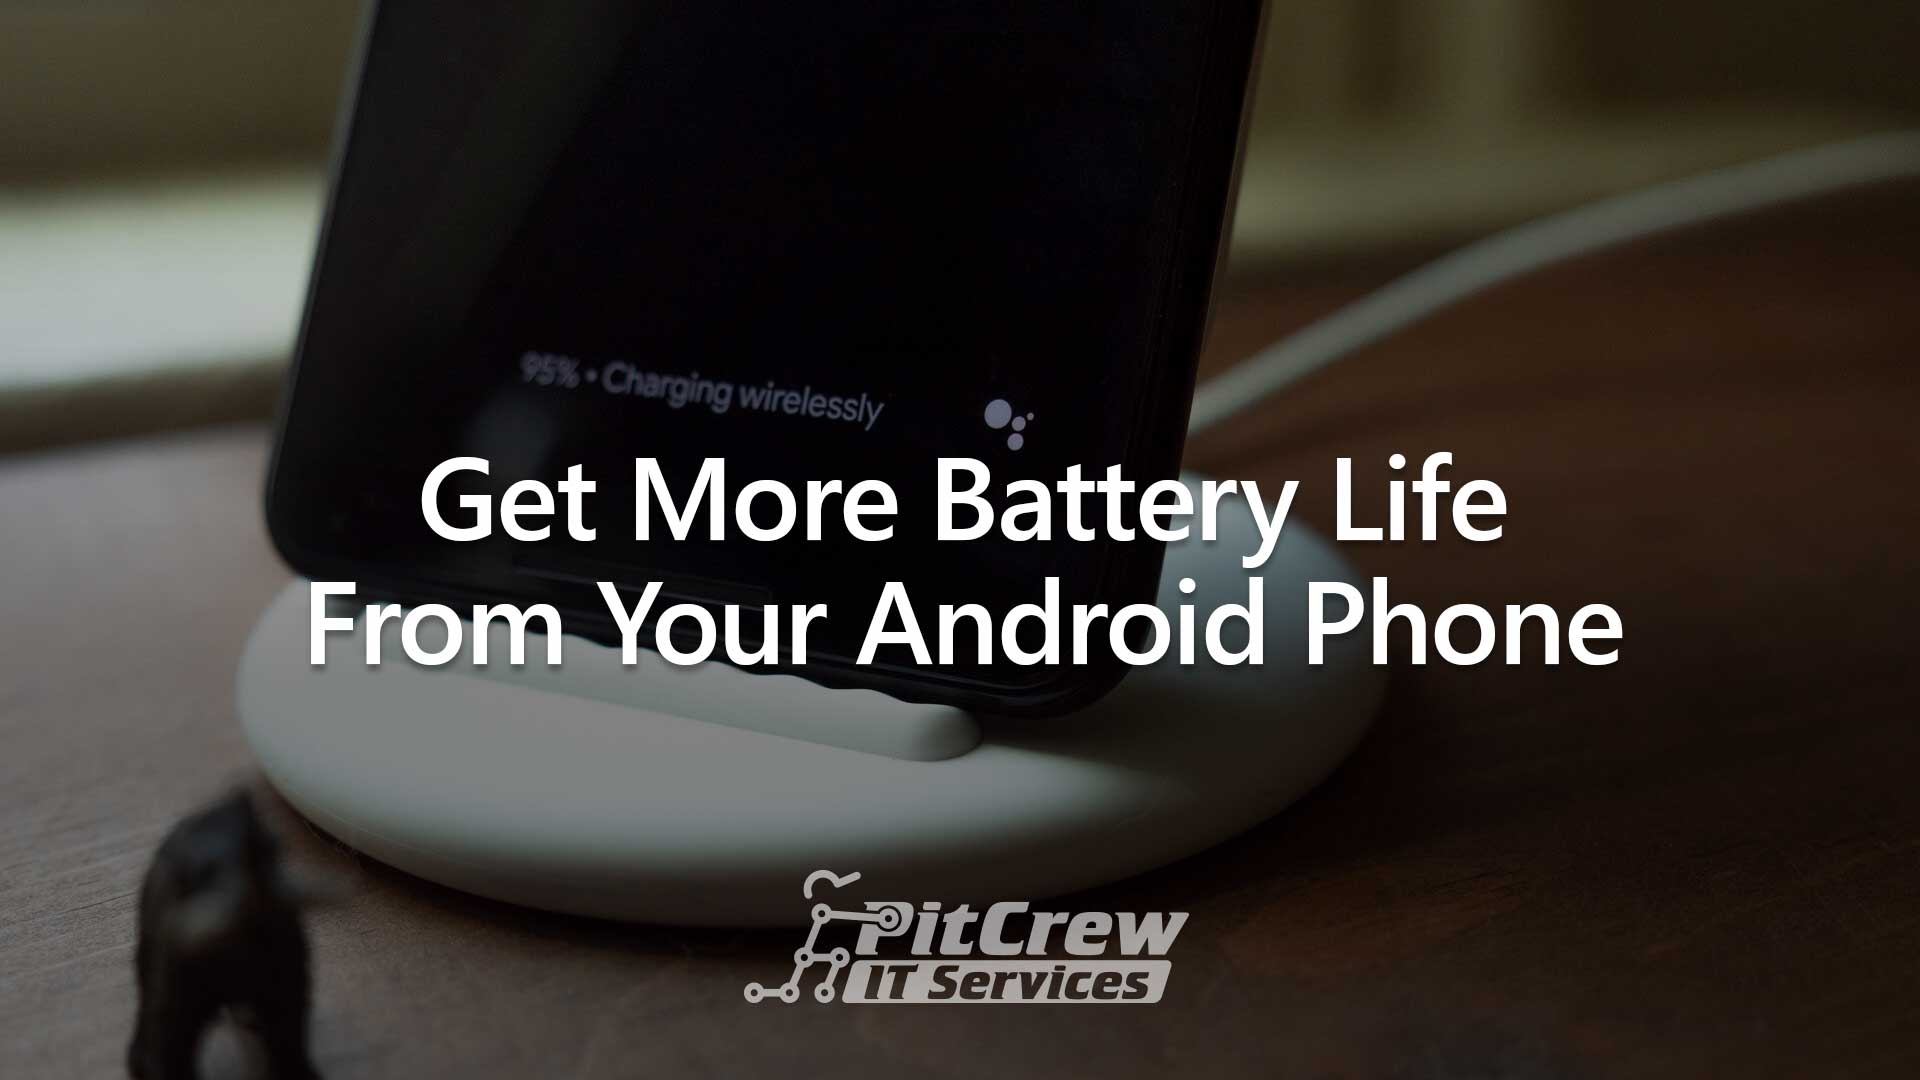 Get More Battery Life From Your Android Phone